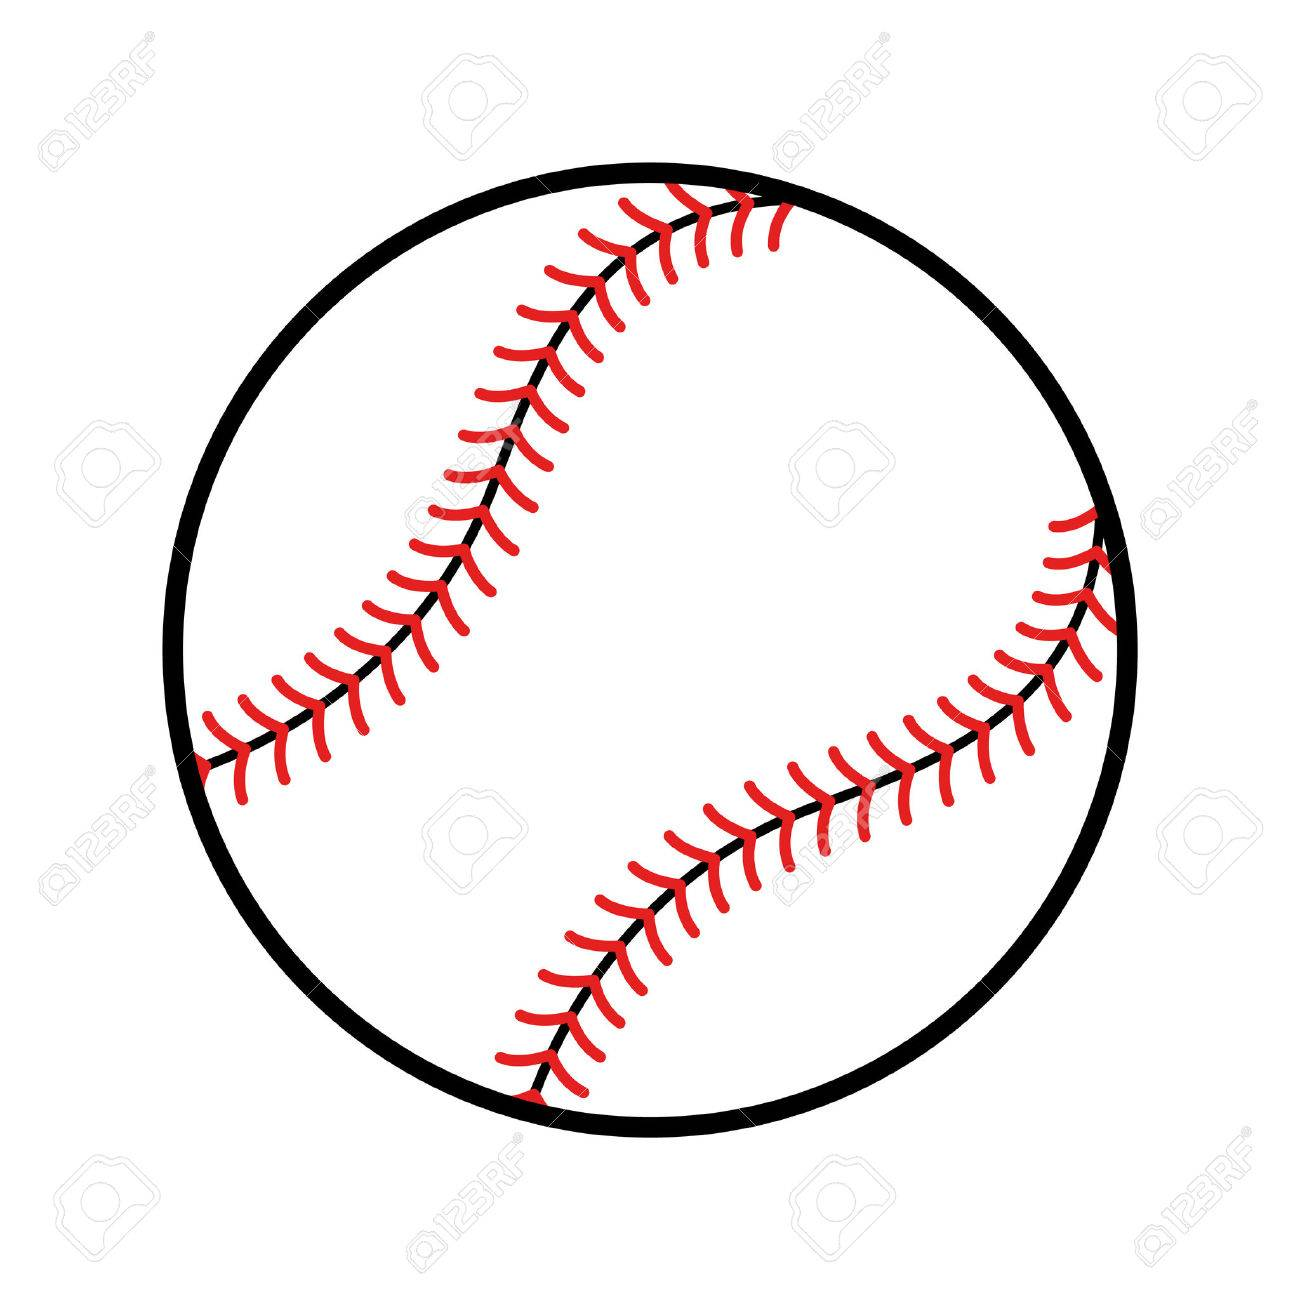 baseball vector icon royalty free cliparts vectors and stock rh 123rf com baseball vector free baseball vector free download